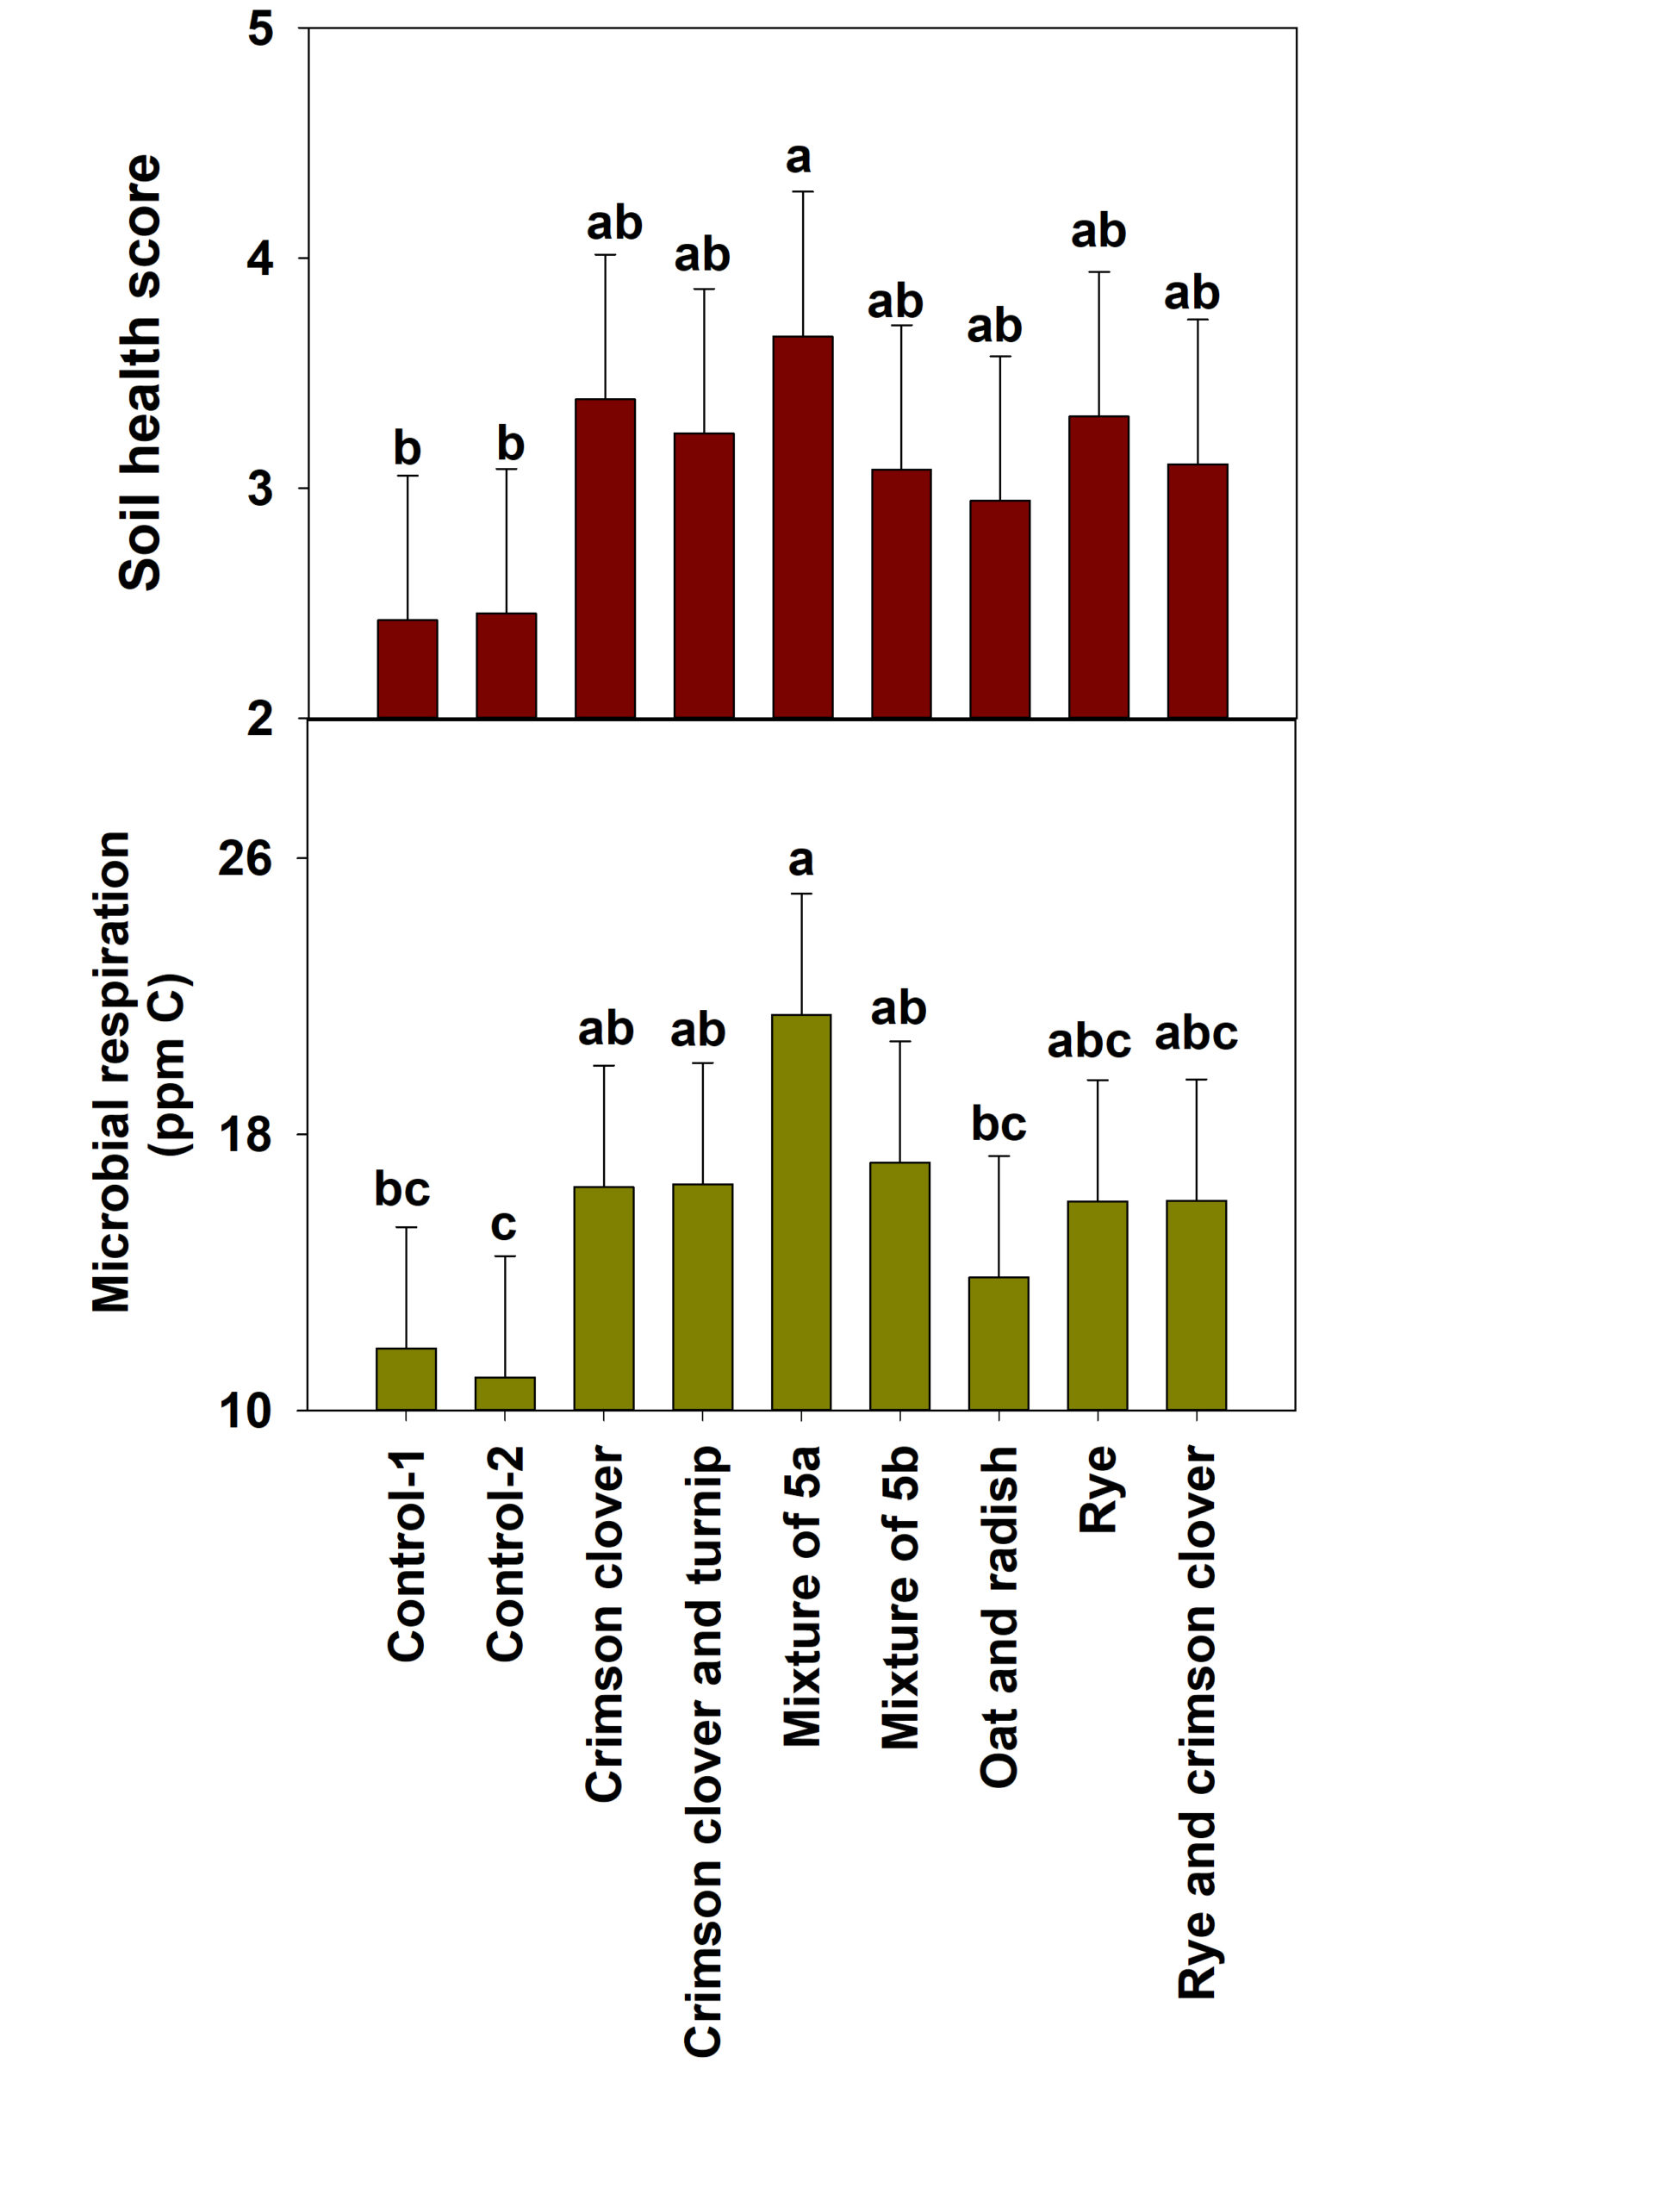 Figure 5. Effect of cover crops on soil health at termination